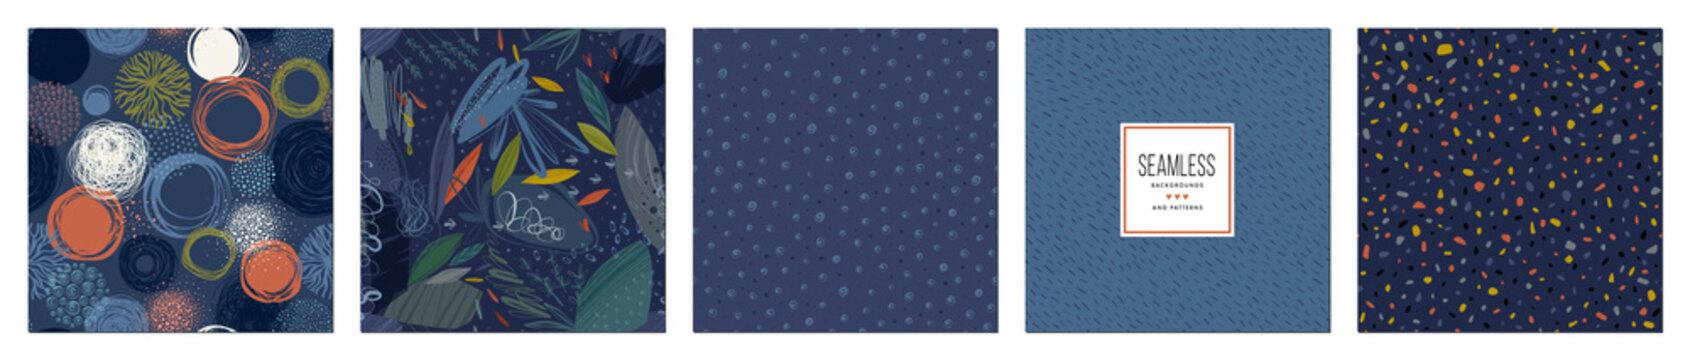 Trendy seamless patterns set in navy blue tones. Cool abstract design. For fashion fabrics, kid's clothes, home decor, quilting, T-shirts, backgrounds, cards and templates, scrapbooking etc.